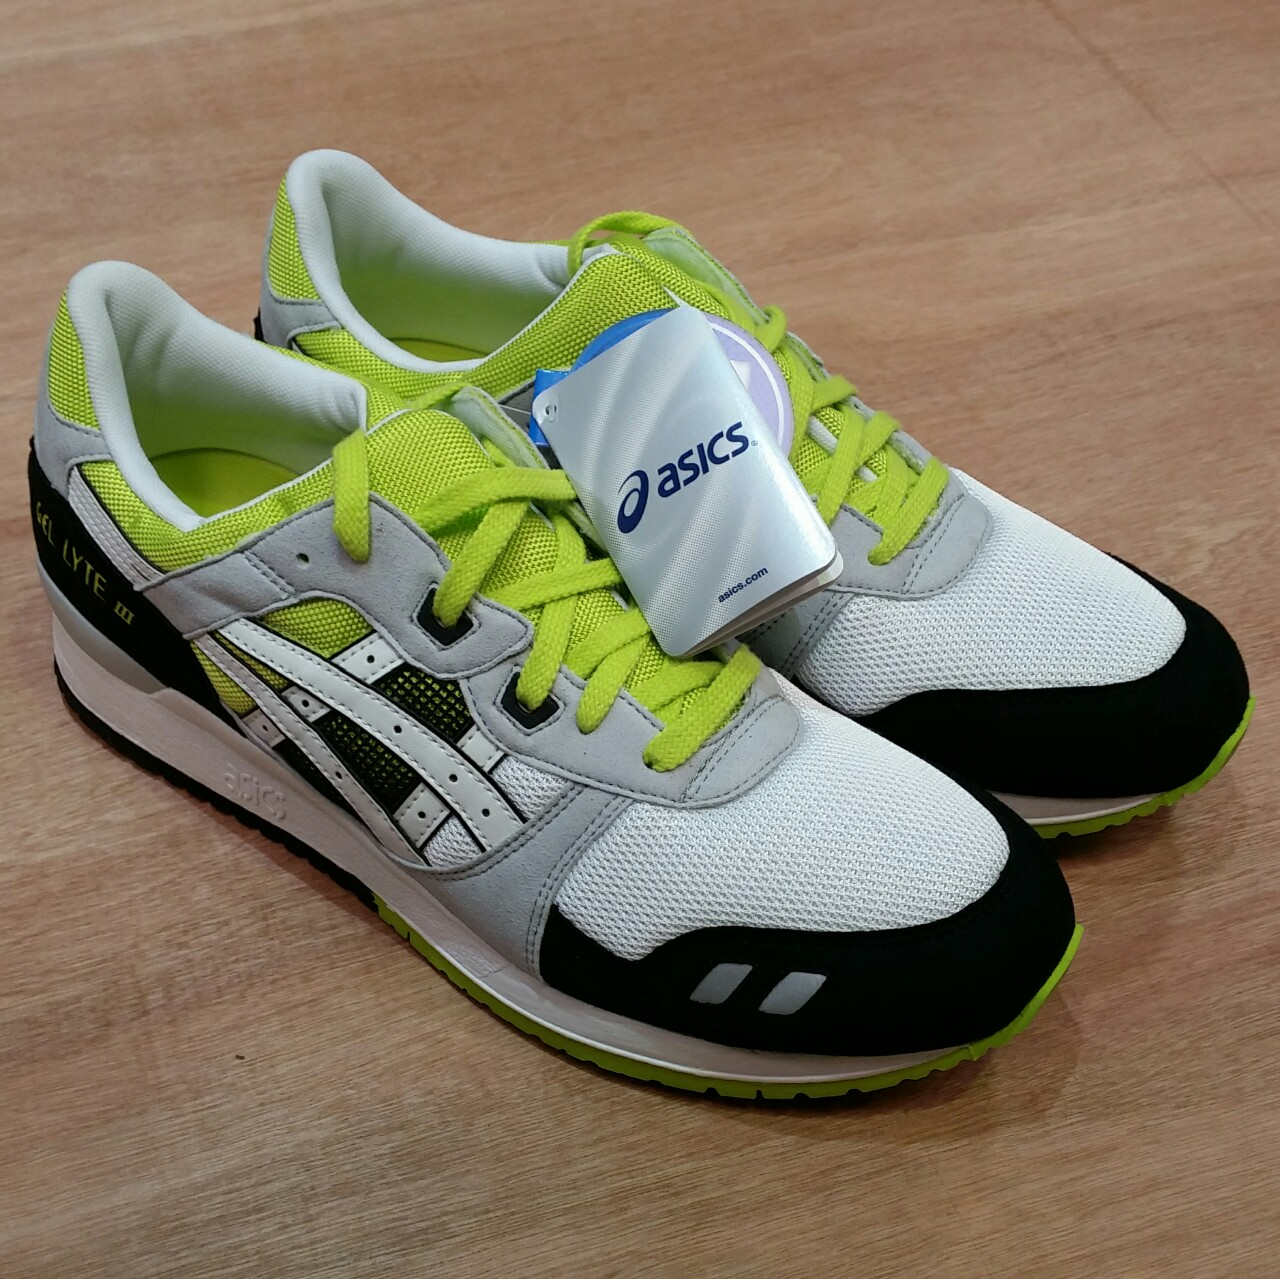 official photos 08596 7e7cc New in box Asics Gel Lyte III green / white / Black... - Depop